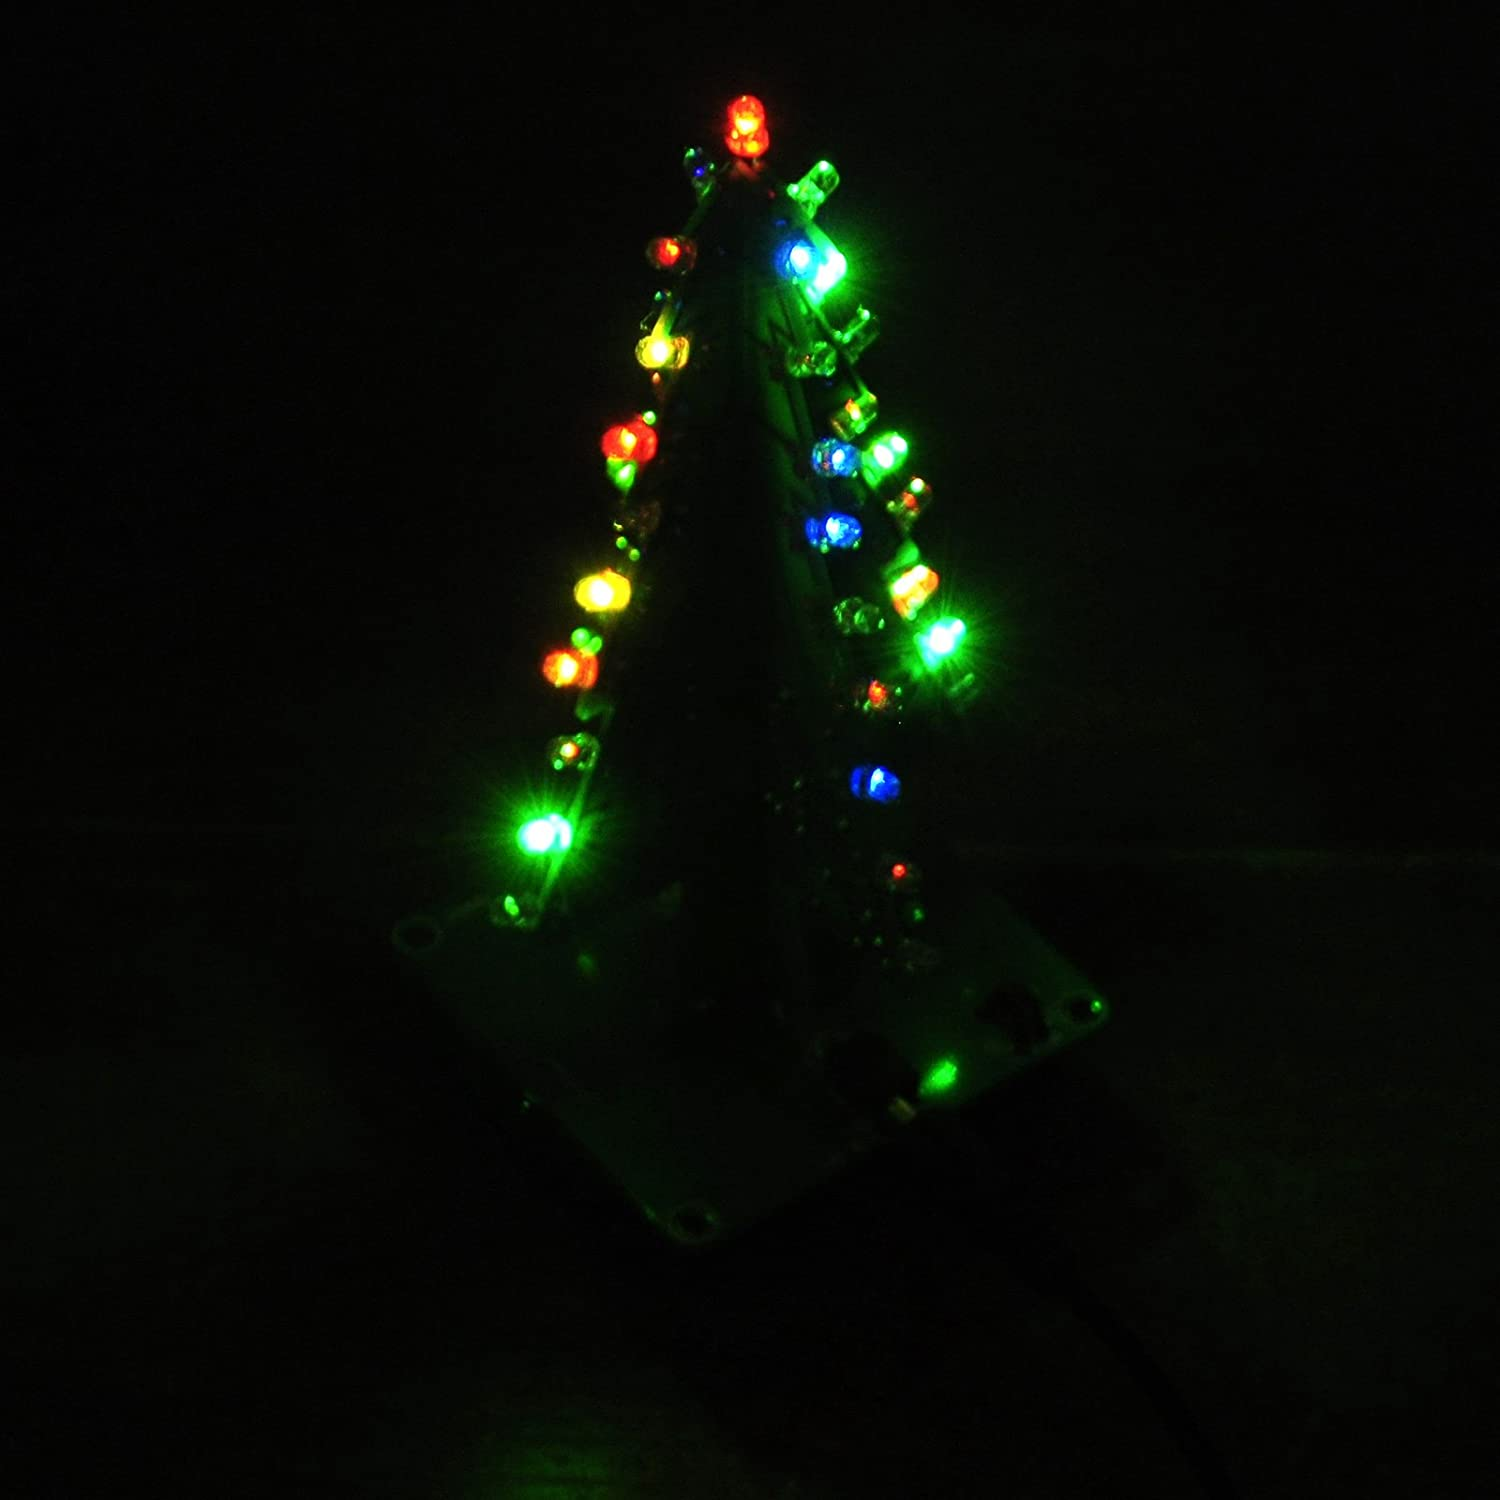 Gikfun 3d Xmas Tree Led Diy Kits 7 Color Flash Circuit Our Two Series Circuits Each Containing 2 Ek1697 Electronics